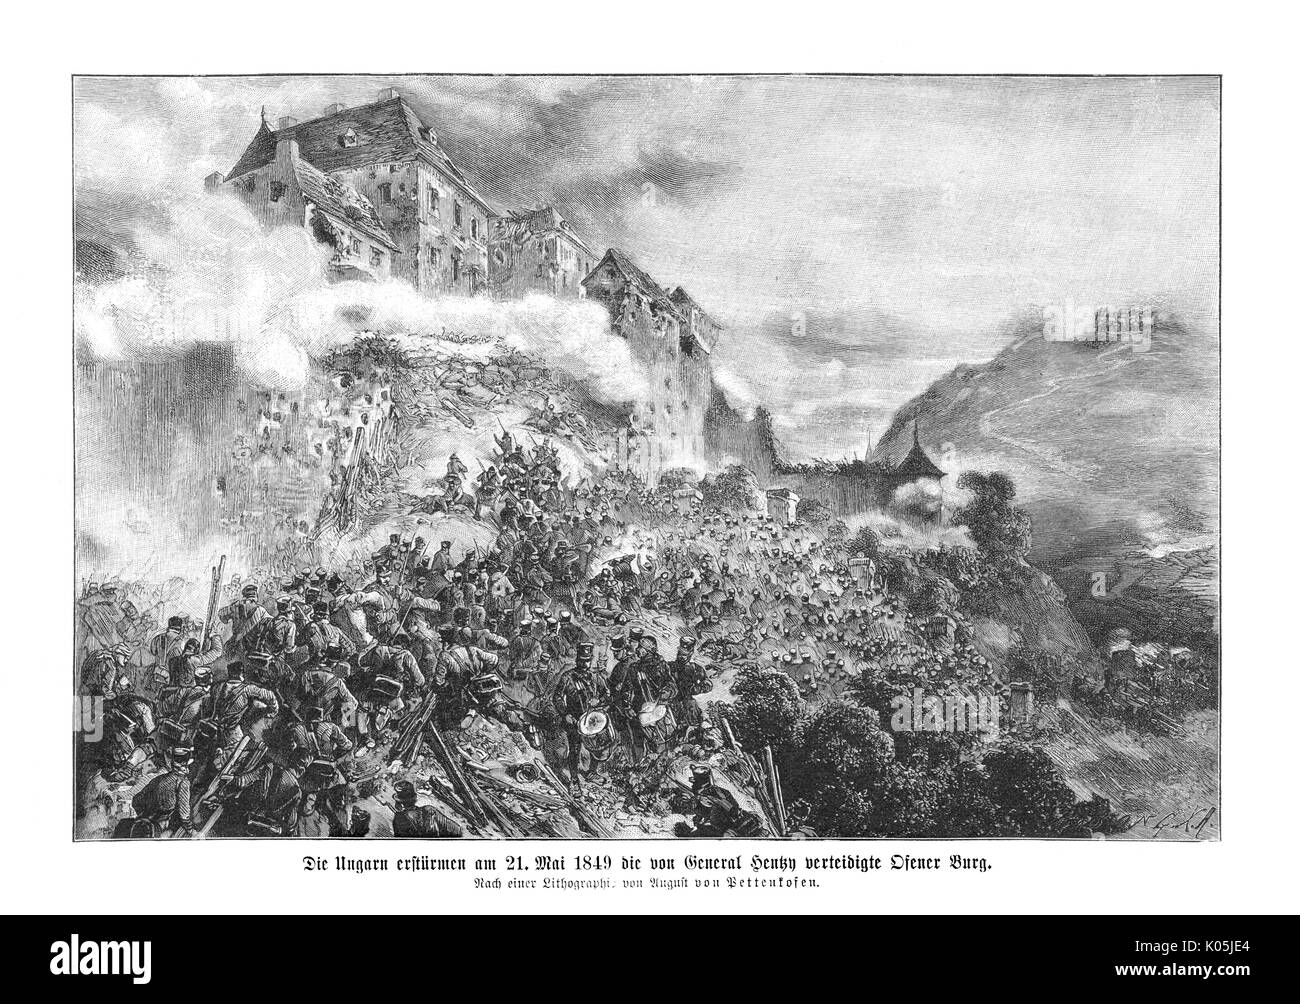 Hungarian rebels storm Ofen  (also known as Buda) on 21st  May 1849        Date: 1849 - Stock Image